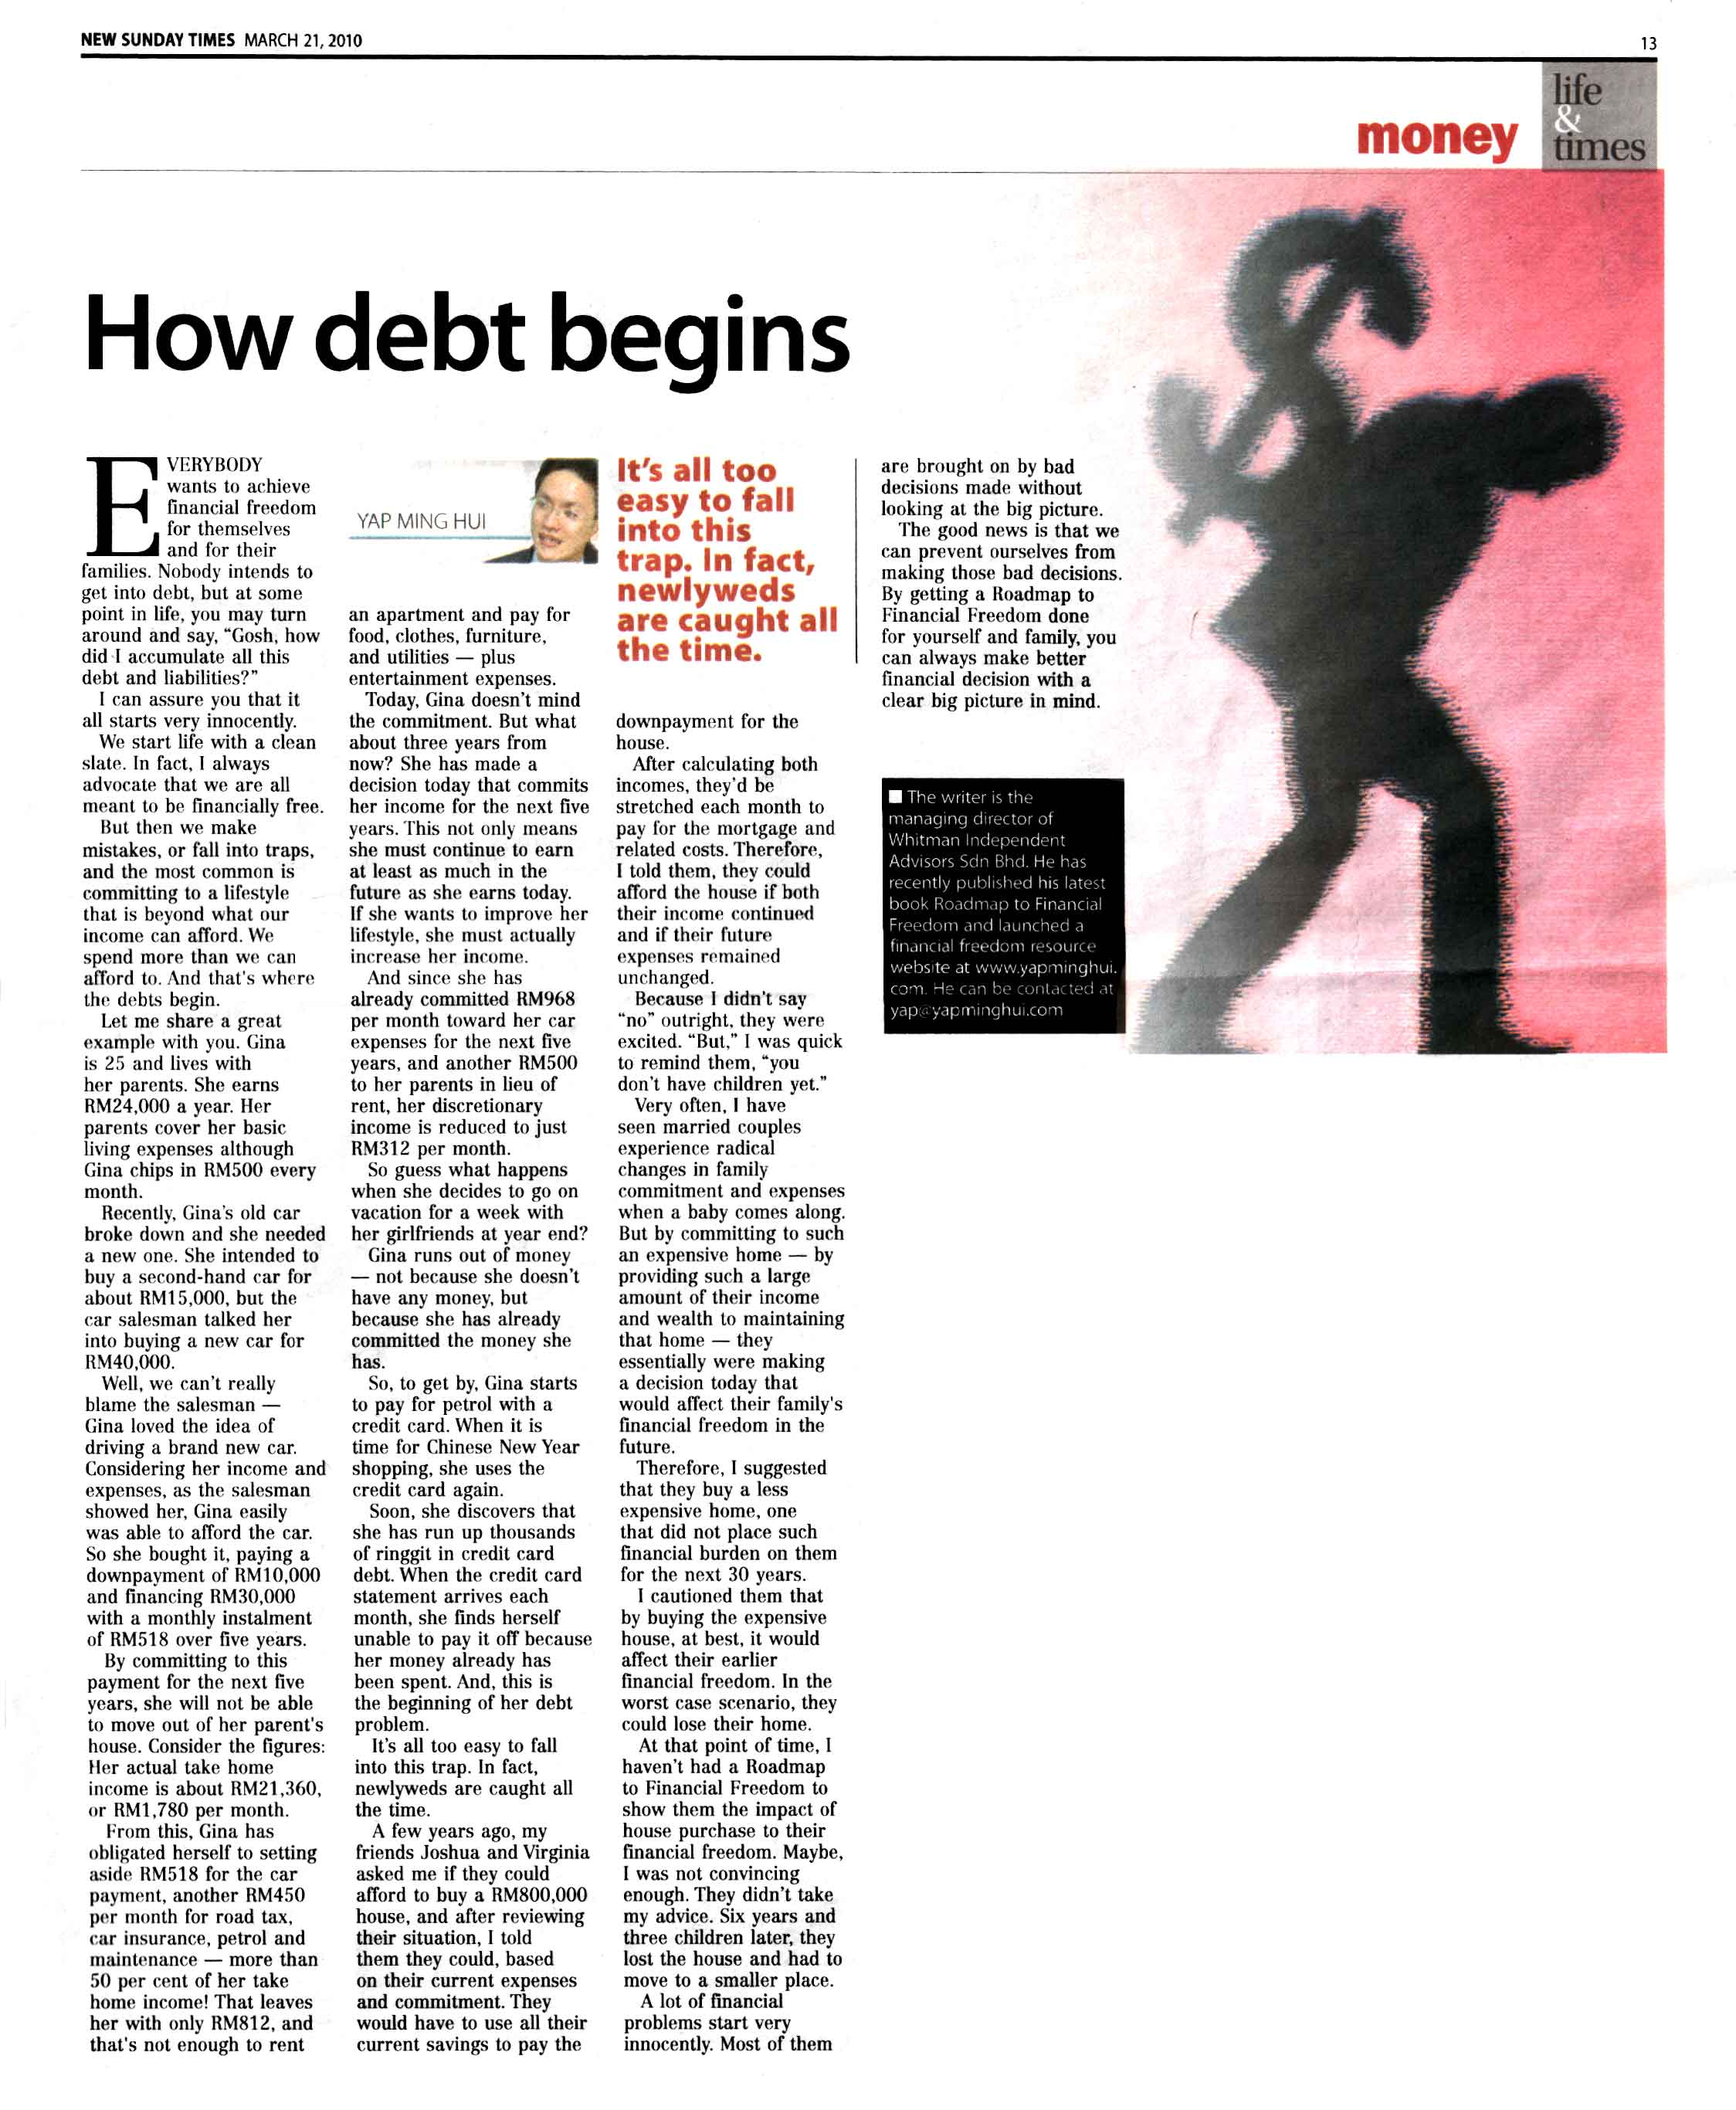 How debt begins (New Sunday Times) - 21 Mar 2010